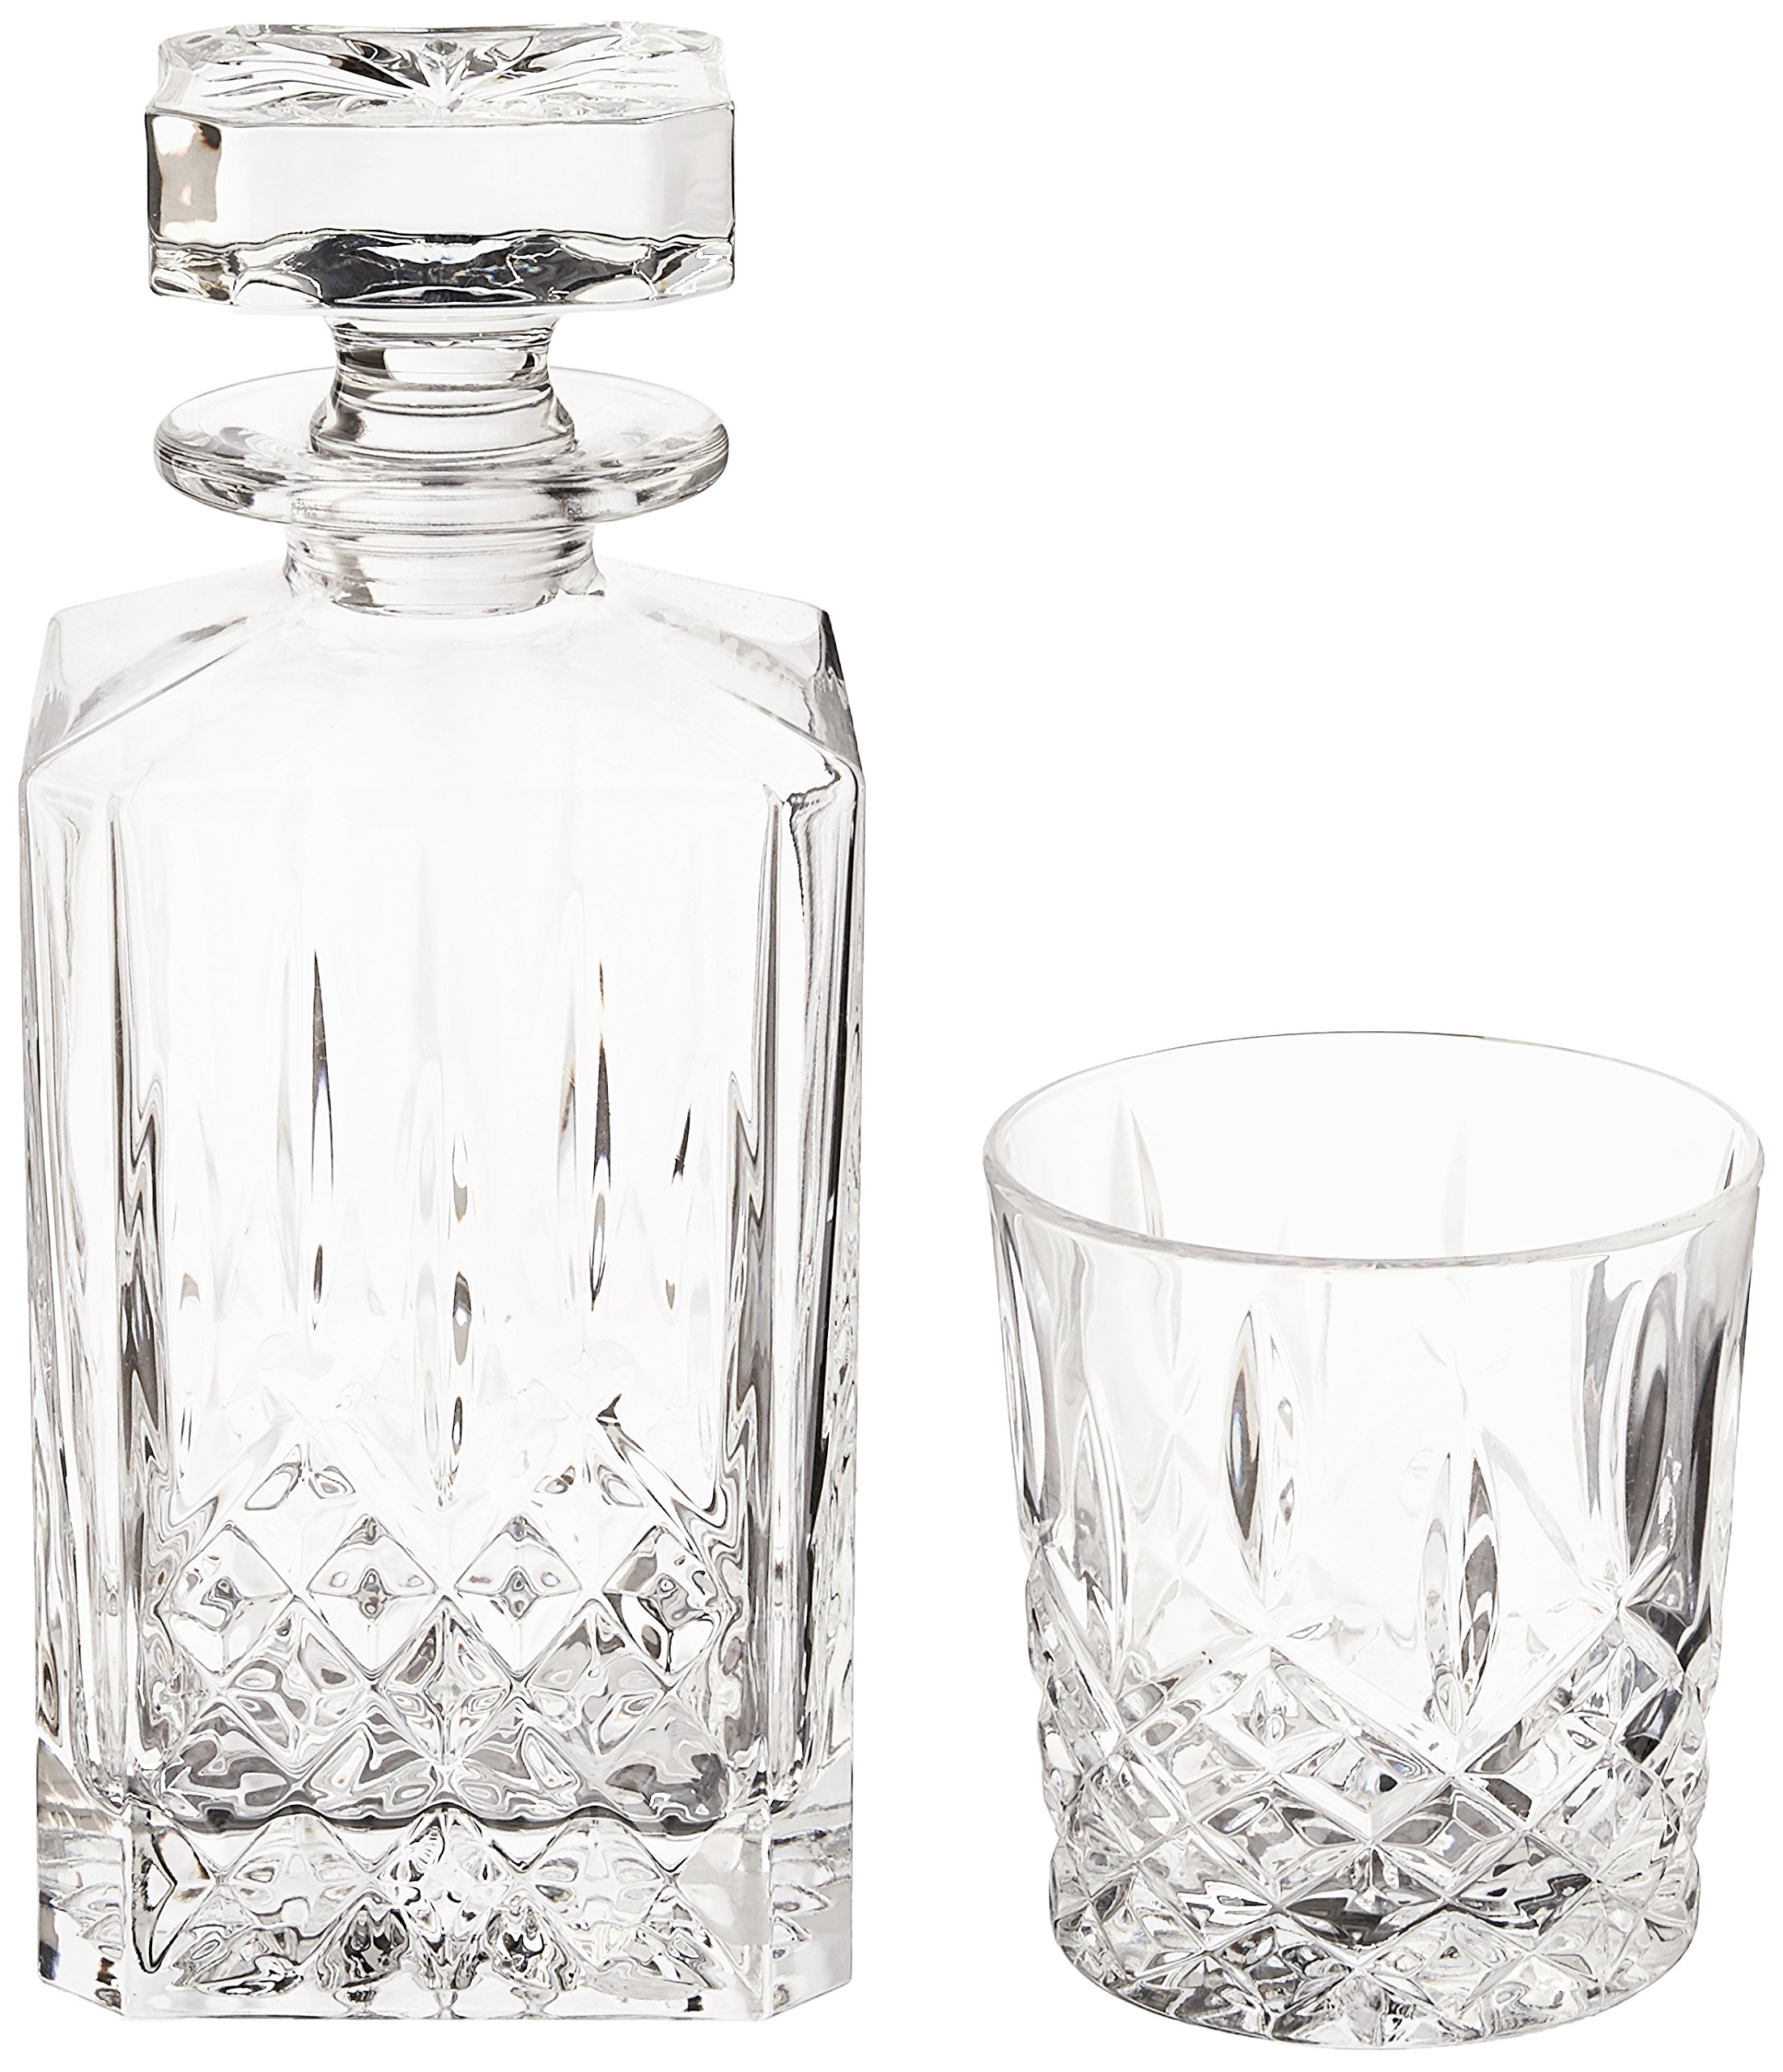 Marquis Waterford Fashioned Decanter Unleaded